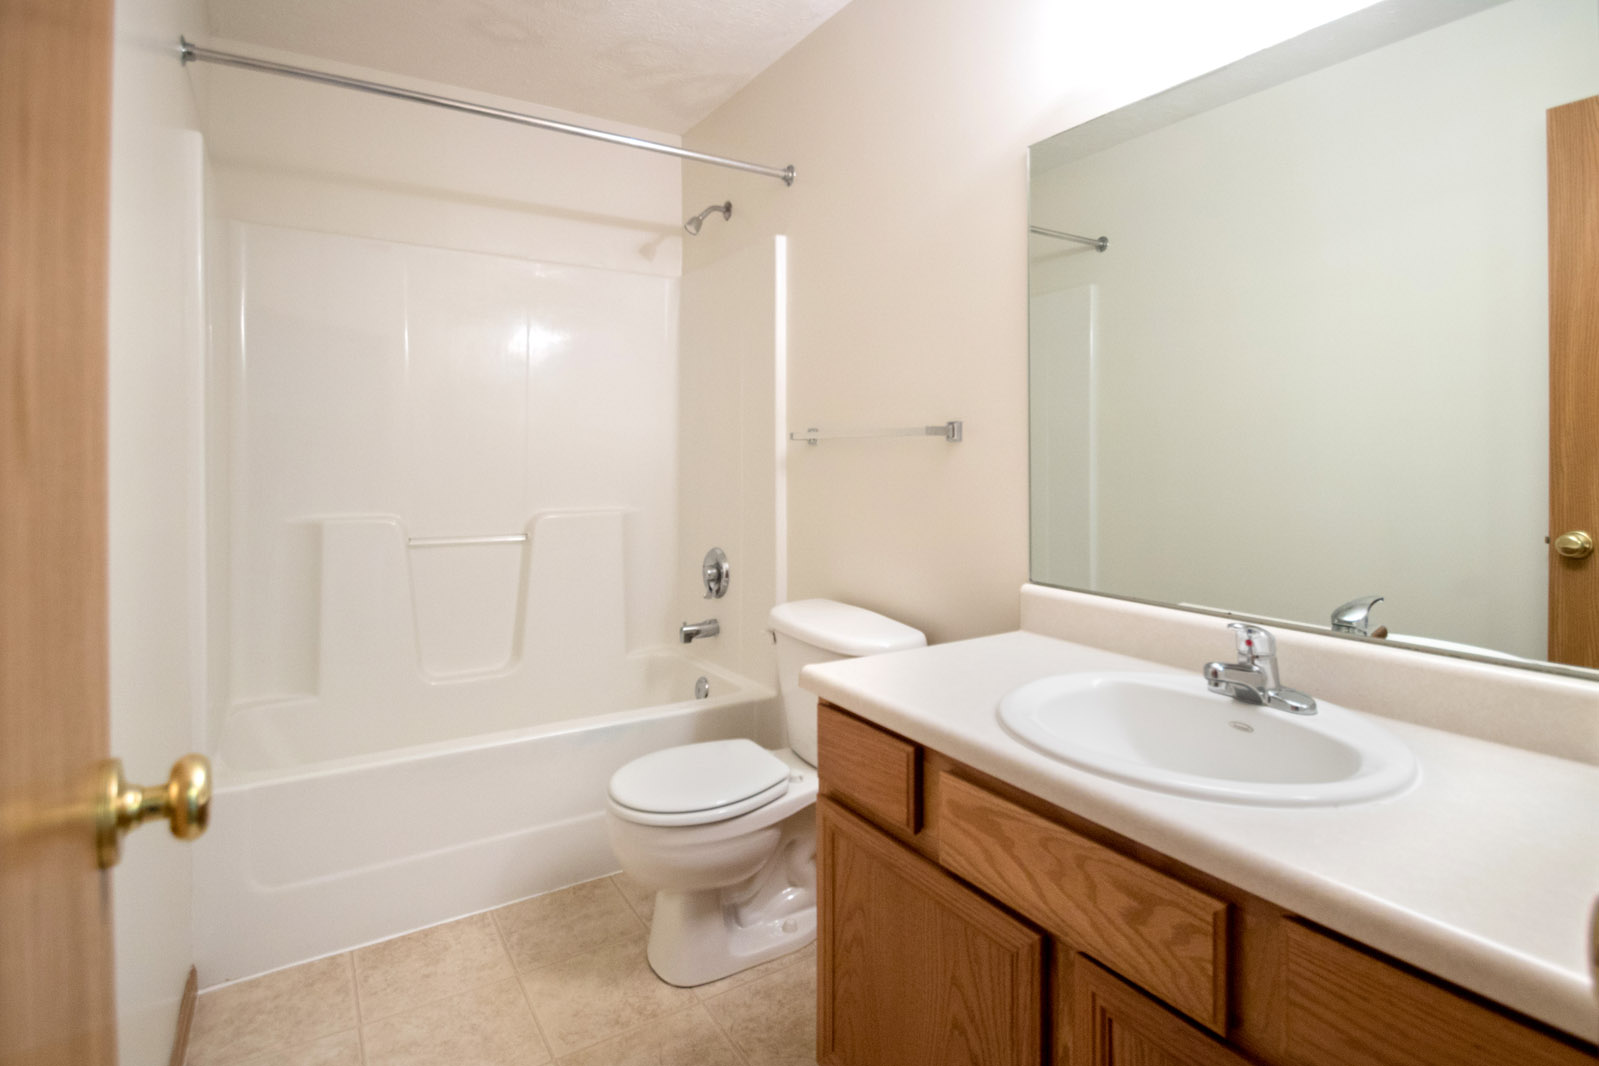 Single Vanity Bathrooms at Northridge Apartments in Gretna, Nebraska